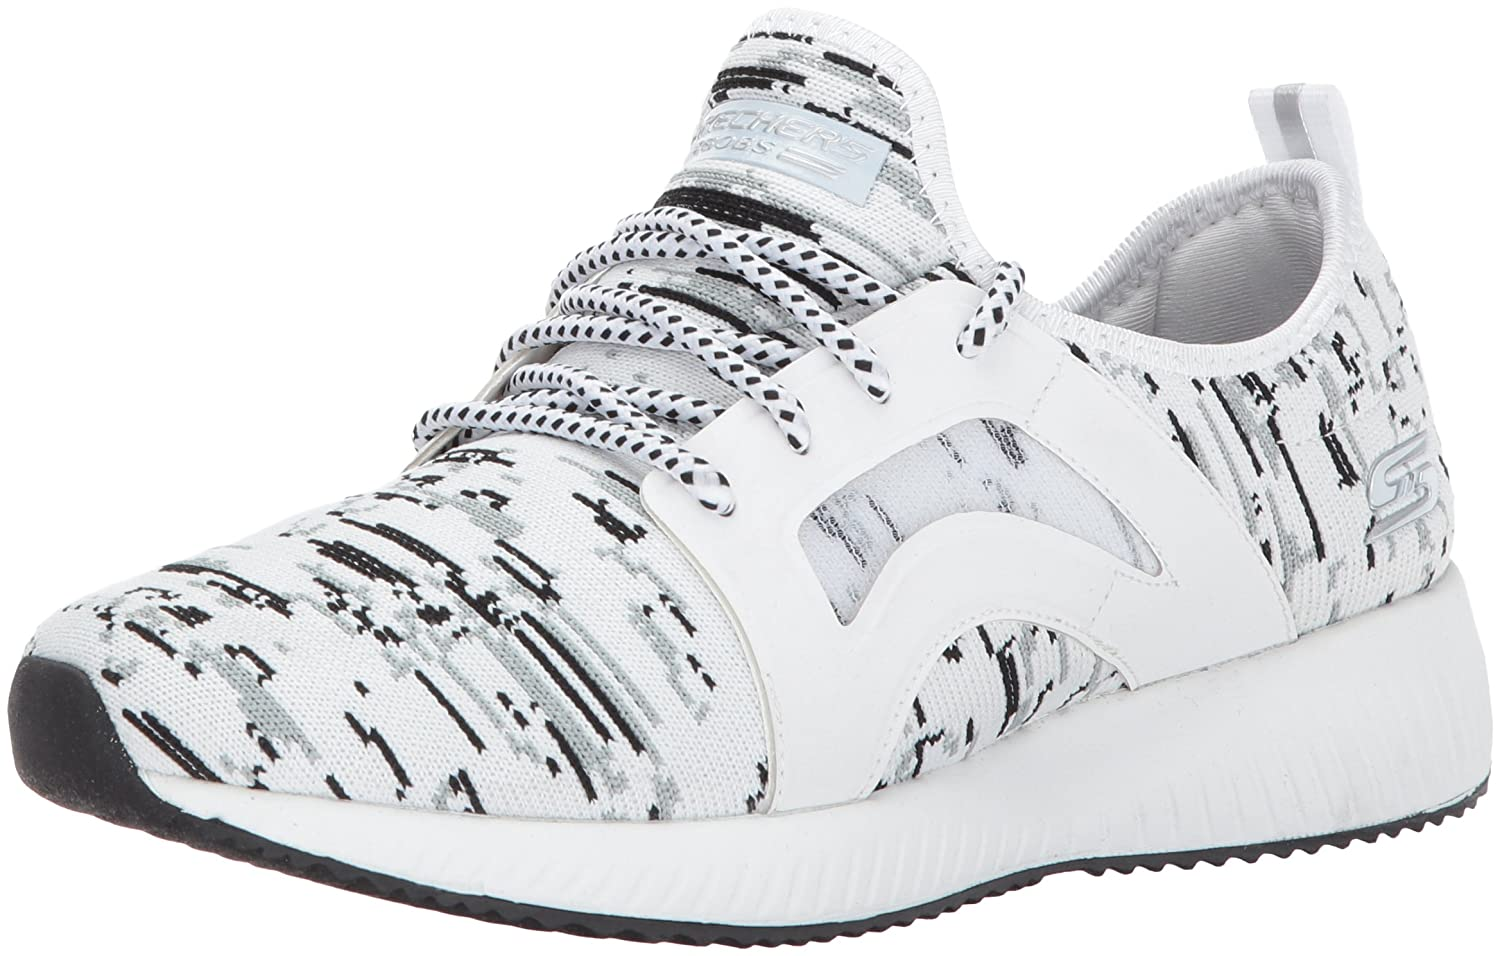 Skechers BOBS from Women's Bobs Squad-Double Dare Fashion Sneaker B0723HSLXC 8.5 B(M) US|White/Black Gray